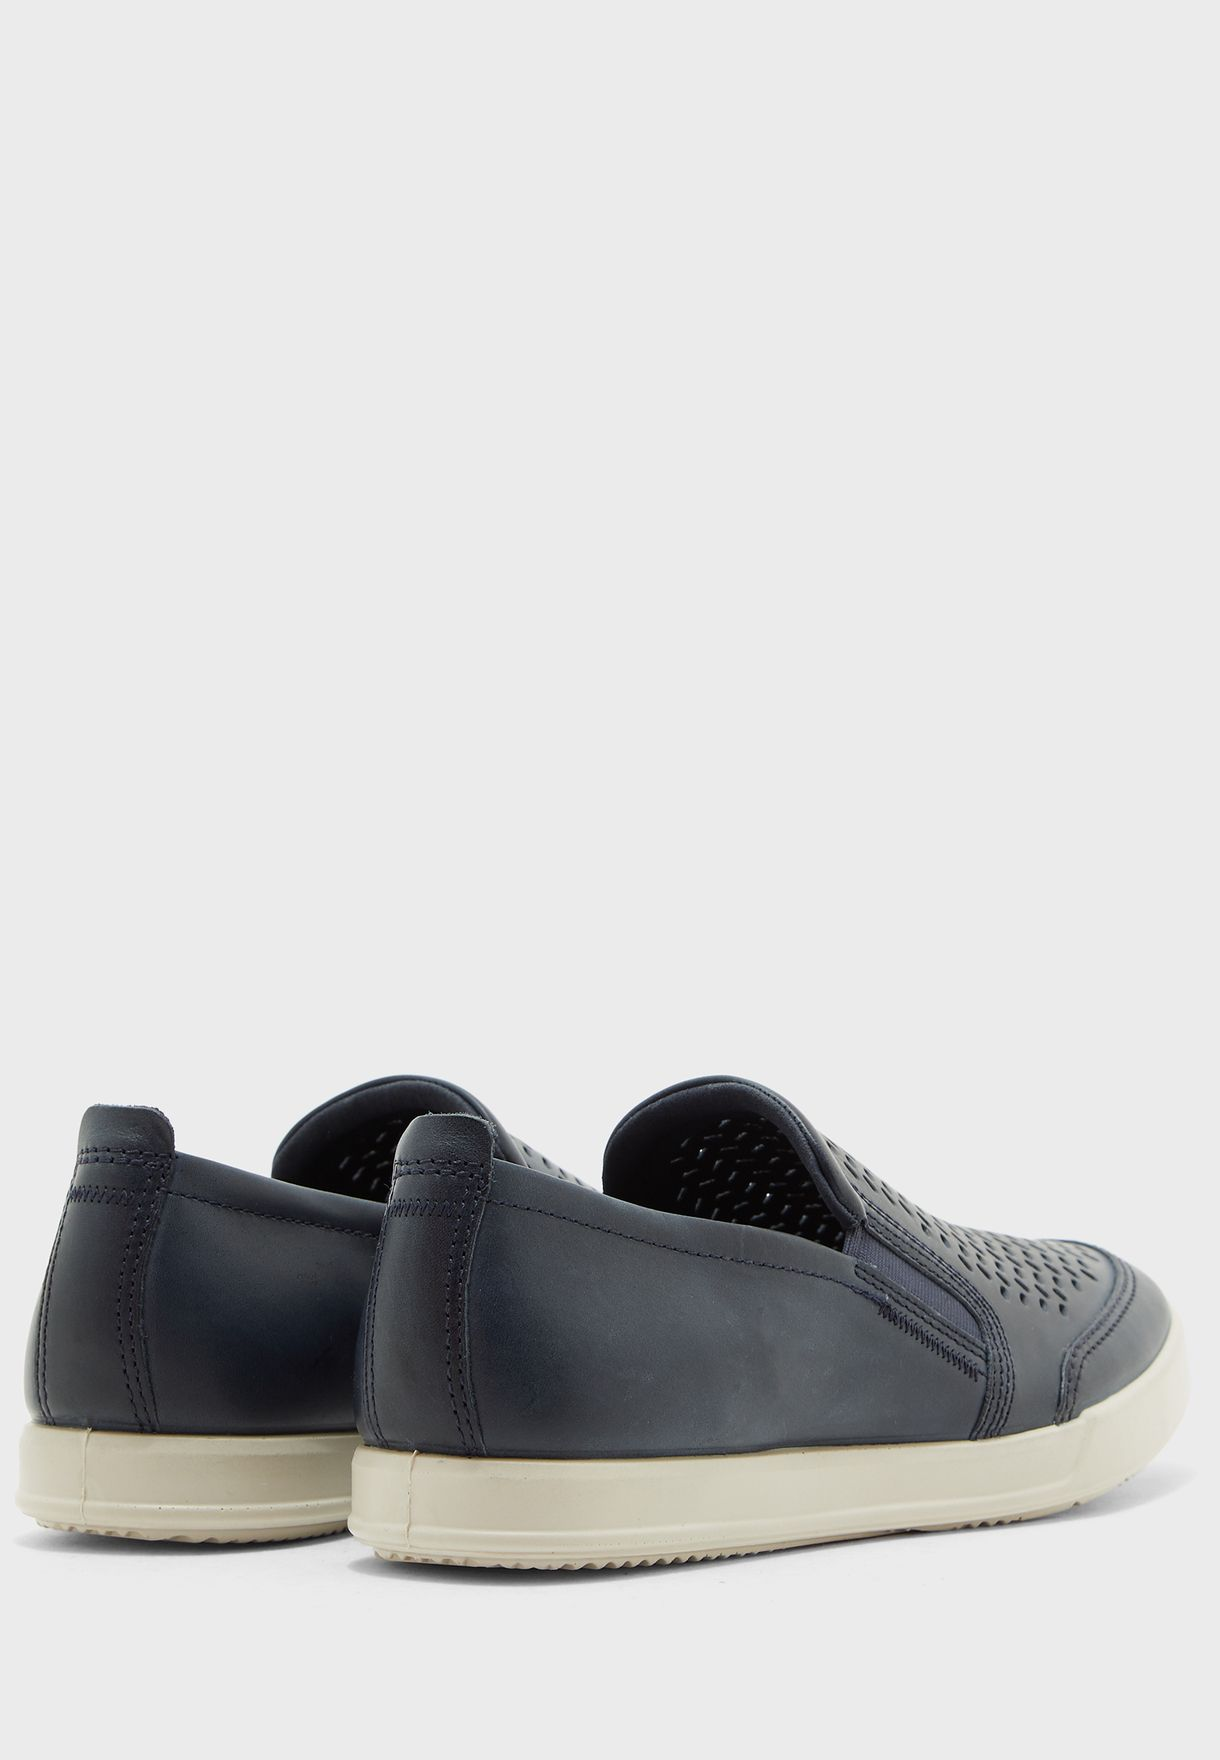 Ecco Collin 2.0 Perforated Slip Ons - Brand Shoes